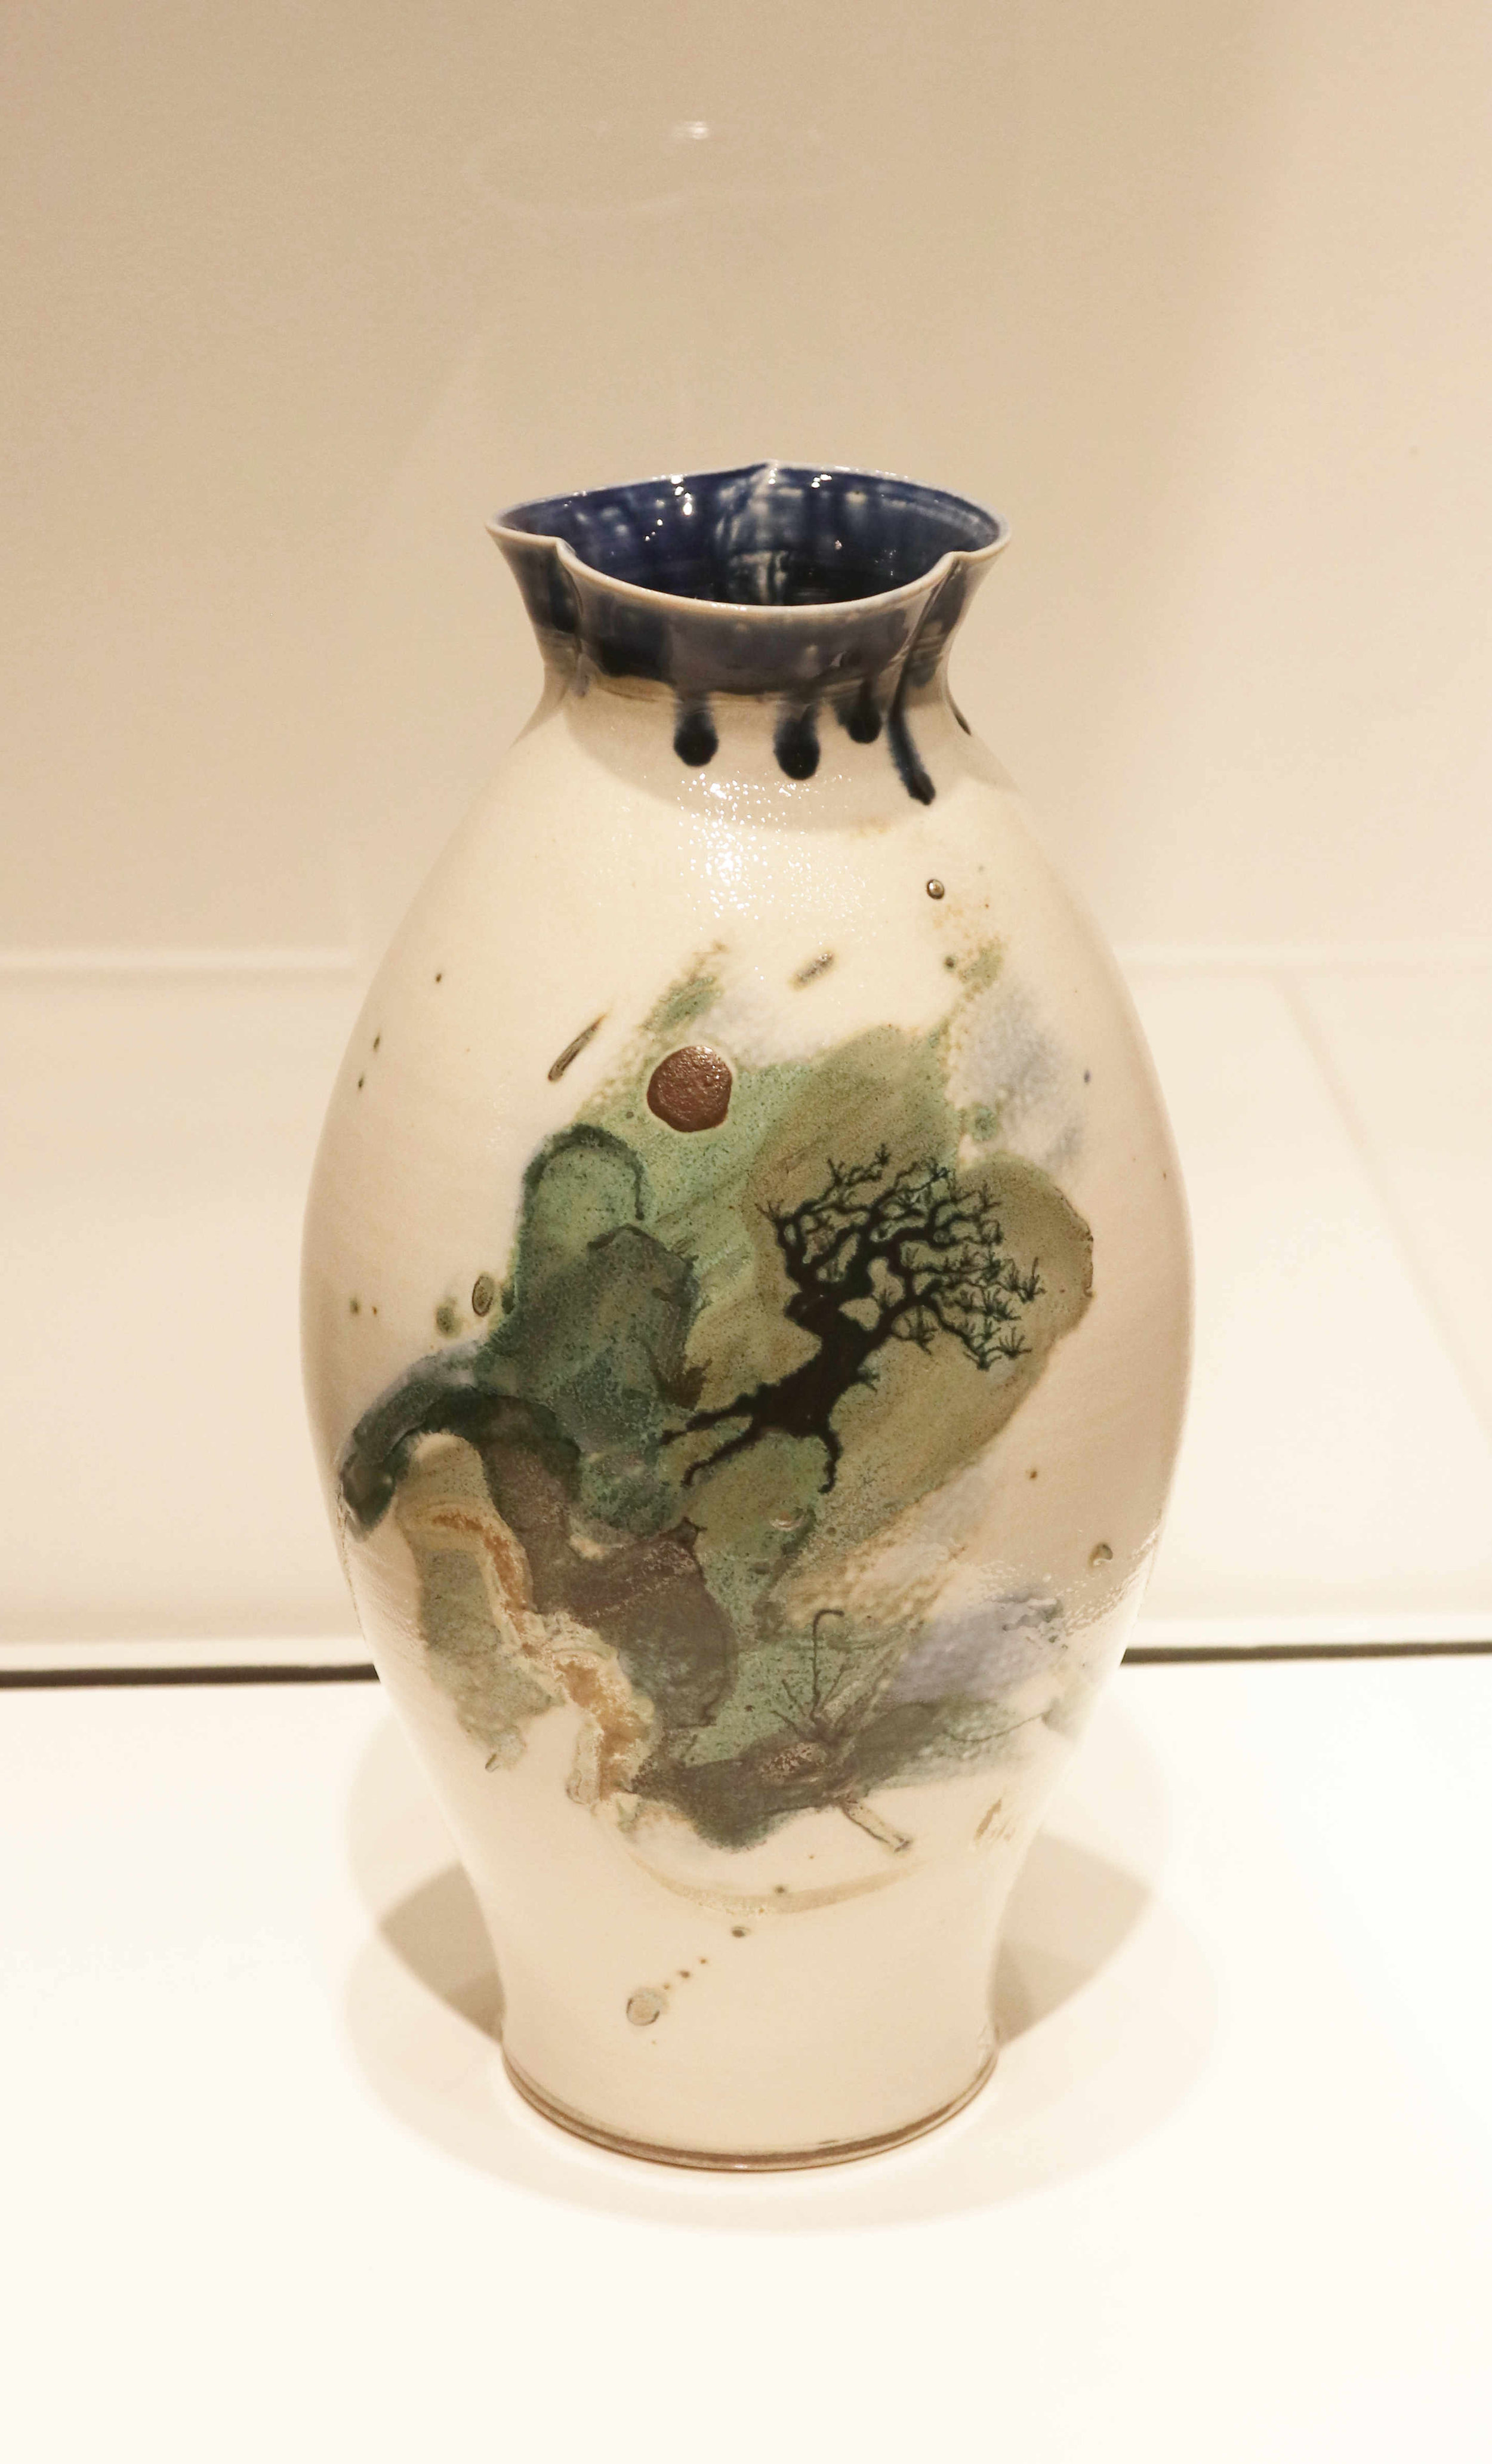 Michael Sherrill, Vase with Landscape, 1983. Porcelain, salt glaze.